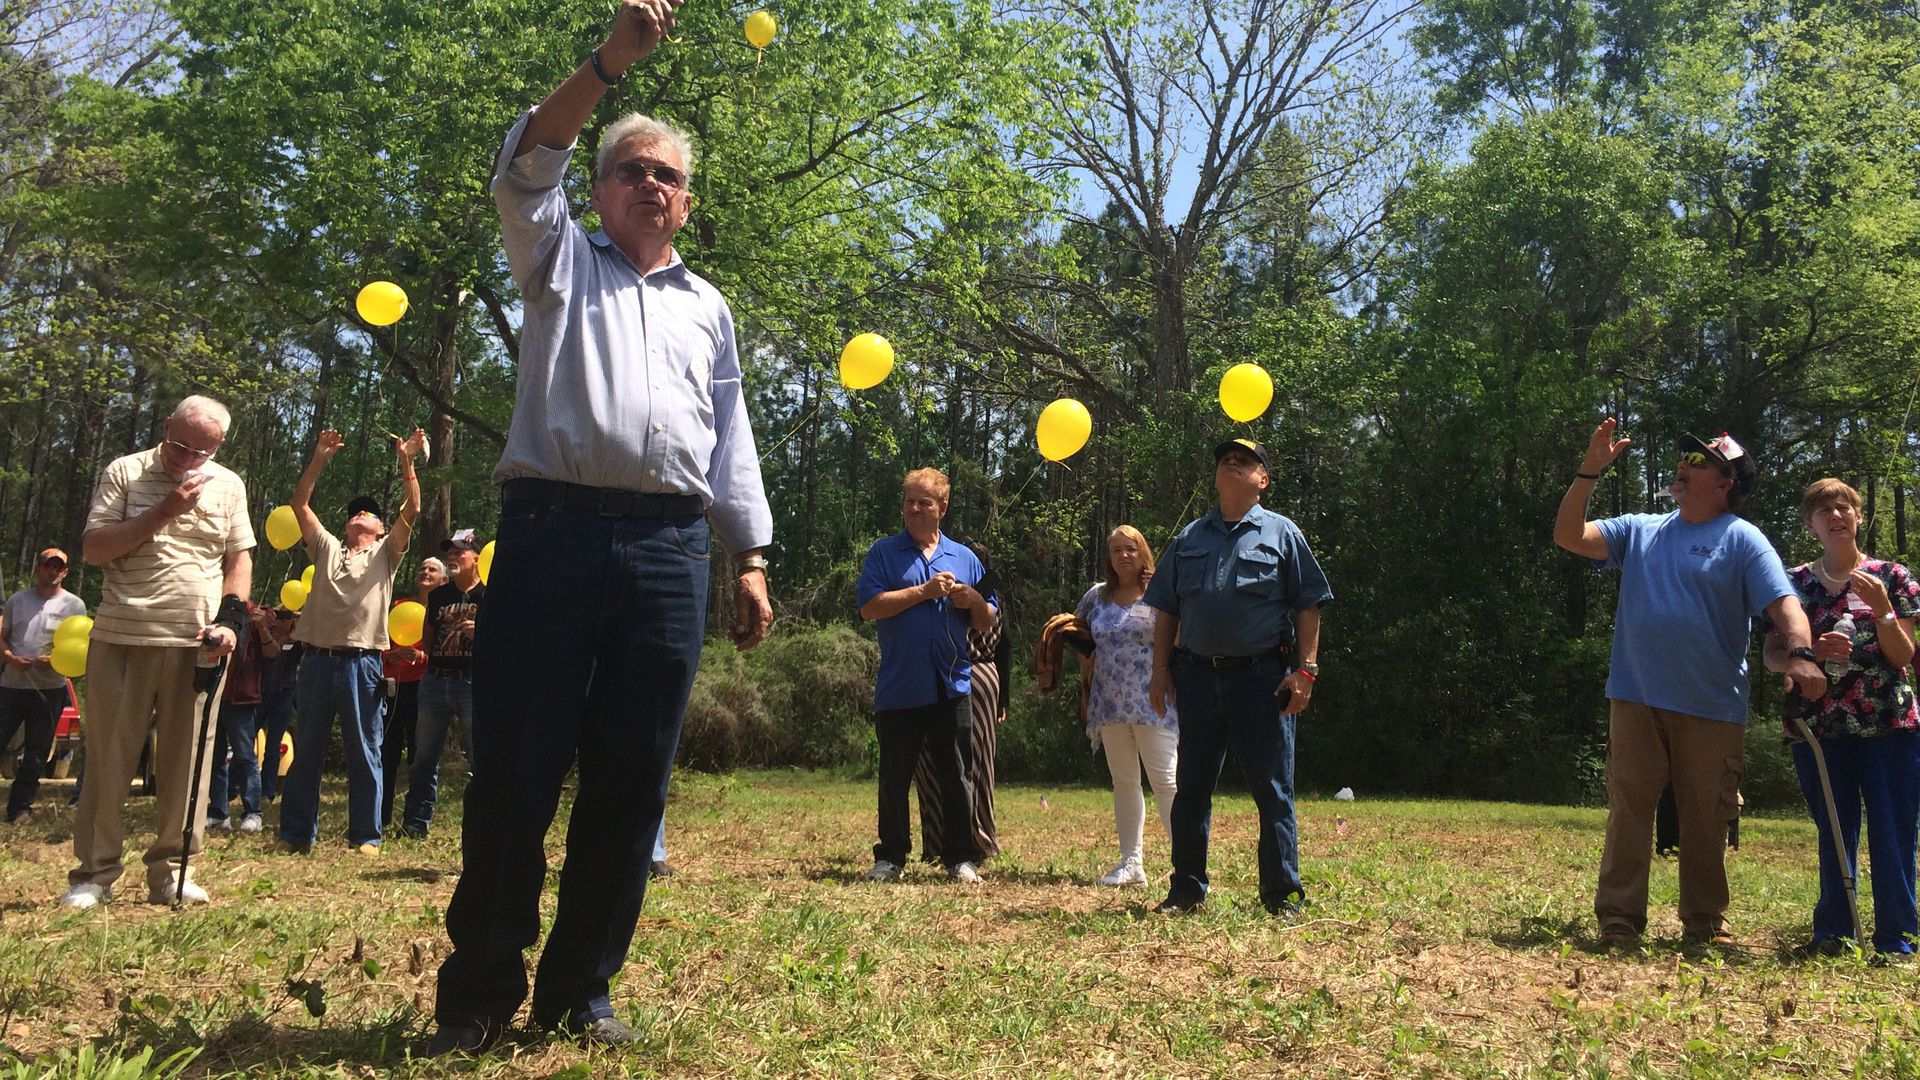 Former wards of the state who call themselves the White House Boys release yellow balloons in memory of boys who died at the state-run reform school.